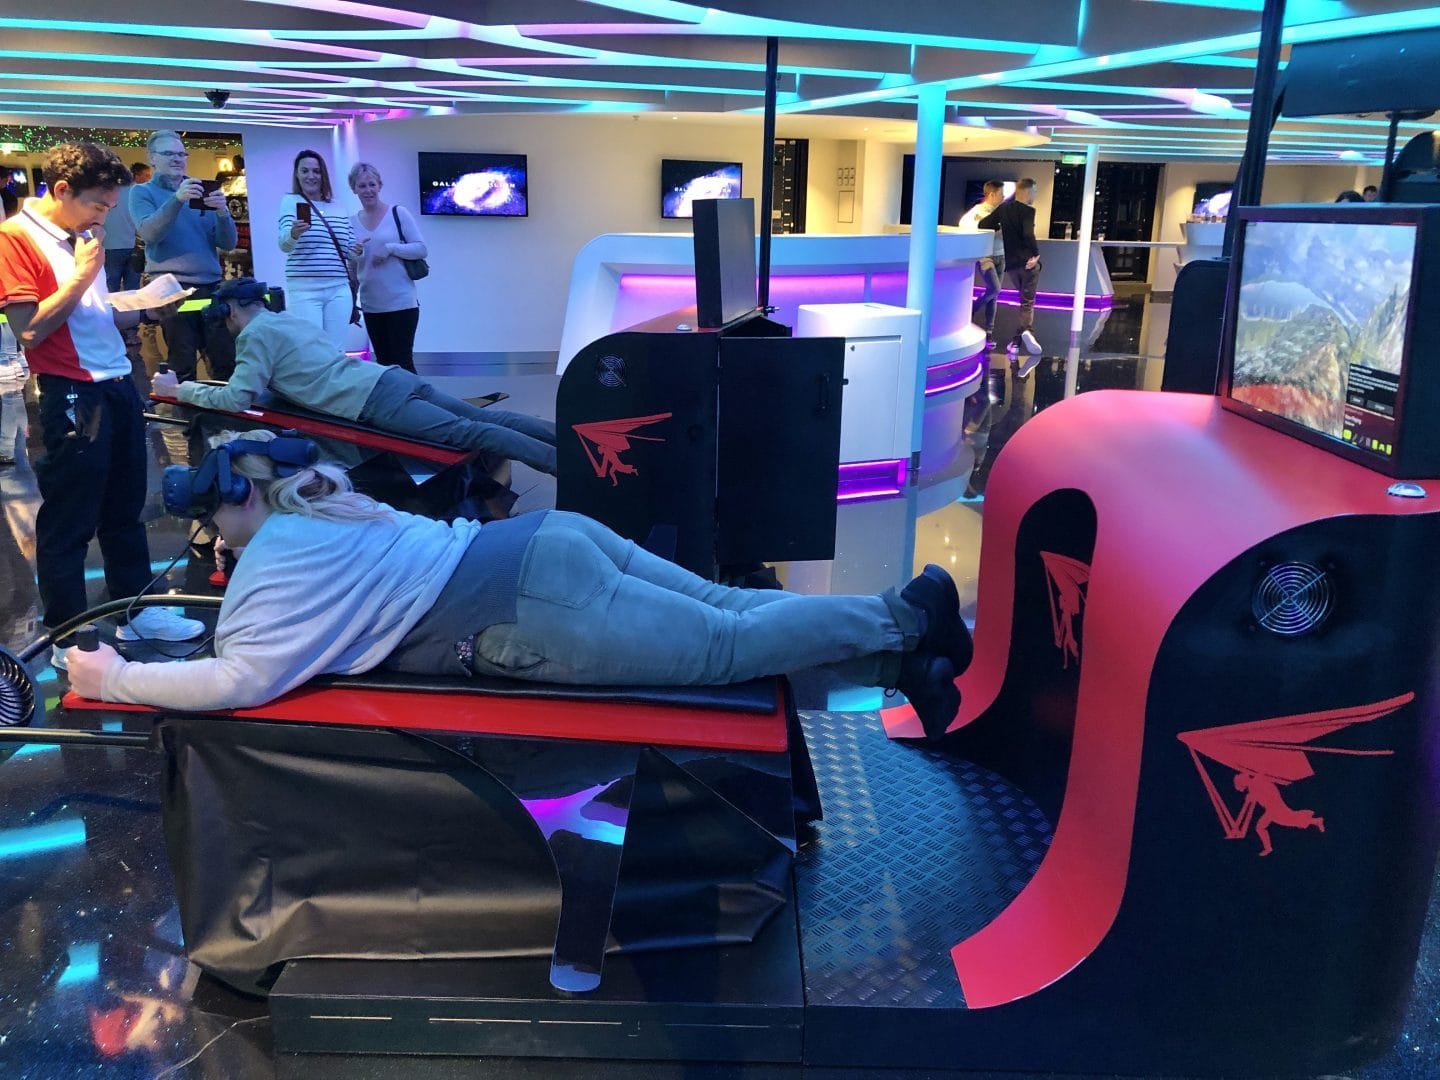 Amazing paragliding VR machine in the Galaxy Pavilion on the Norwegian Encore